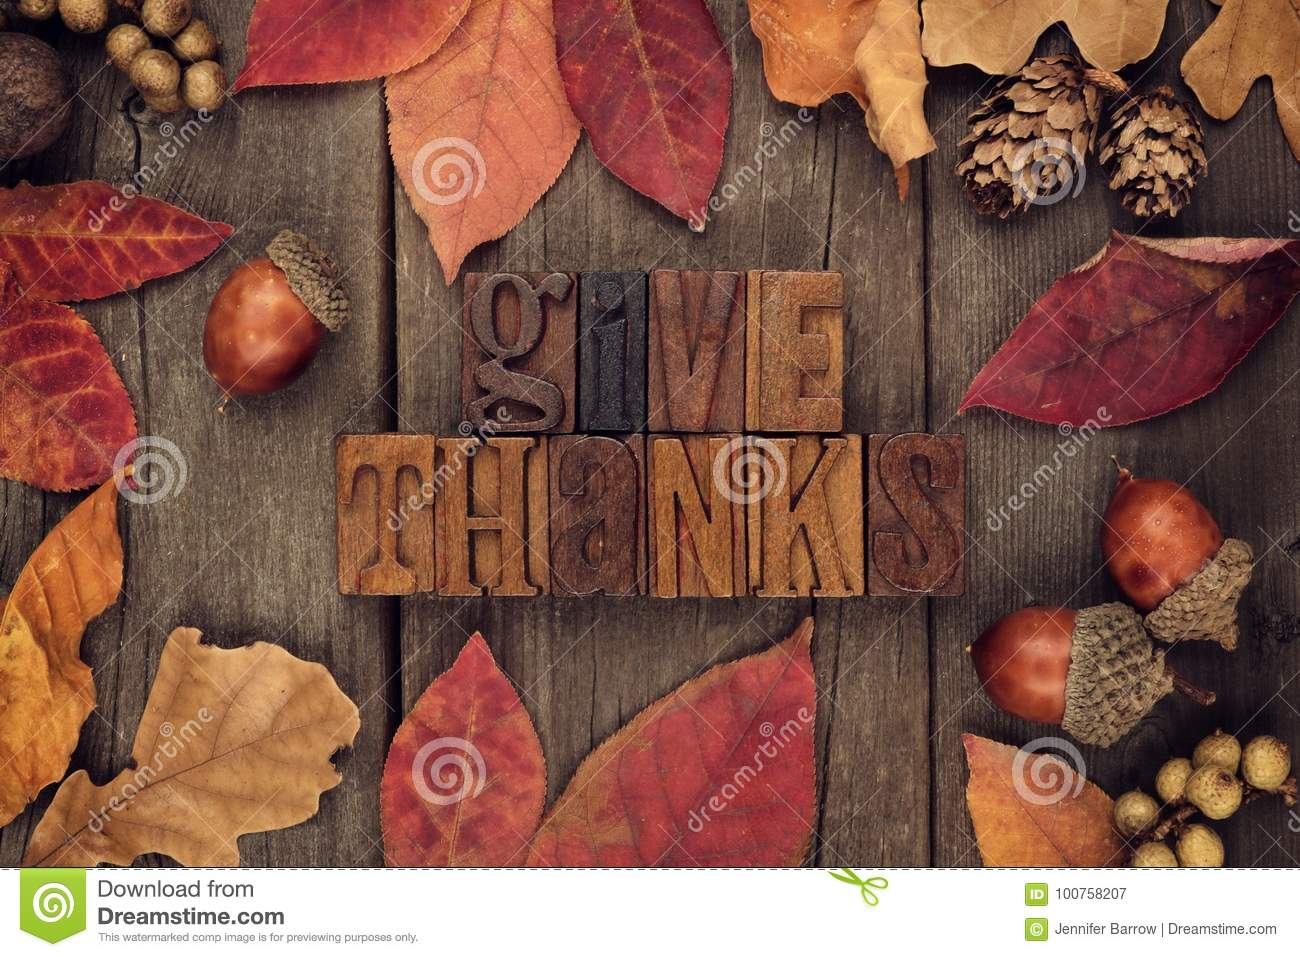 Give Thanks letterpress with frame of autumn leaves over wood